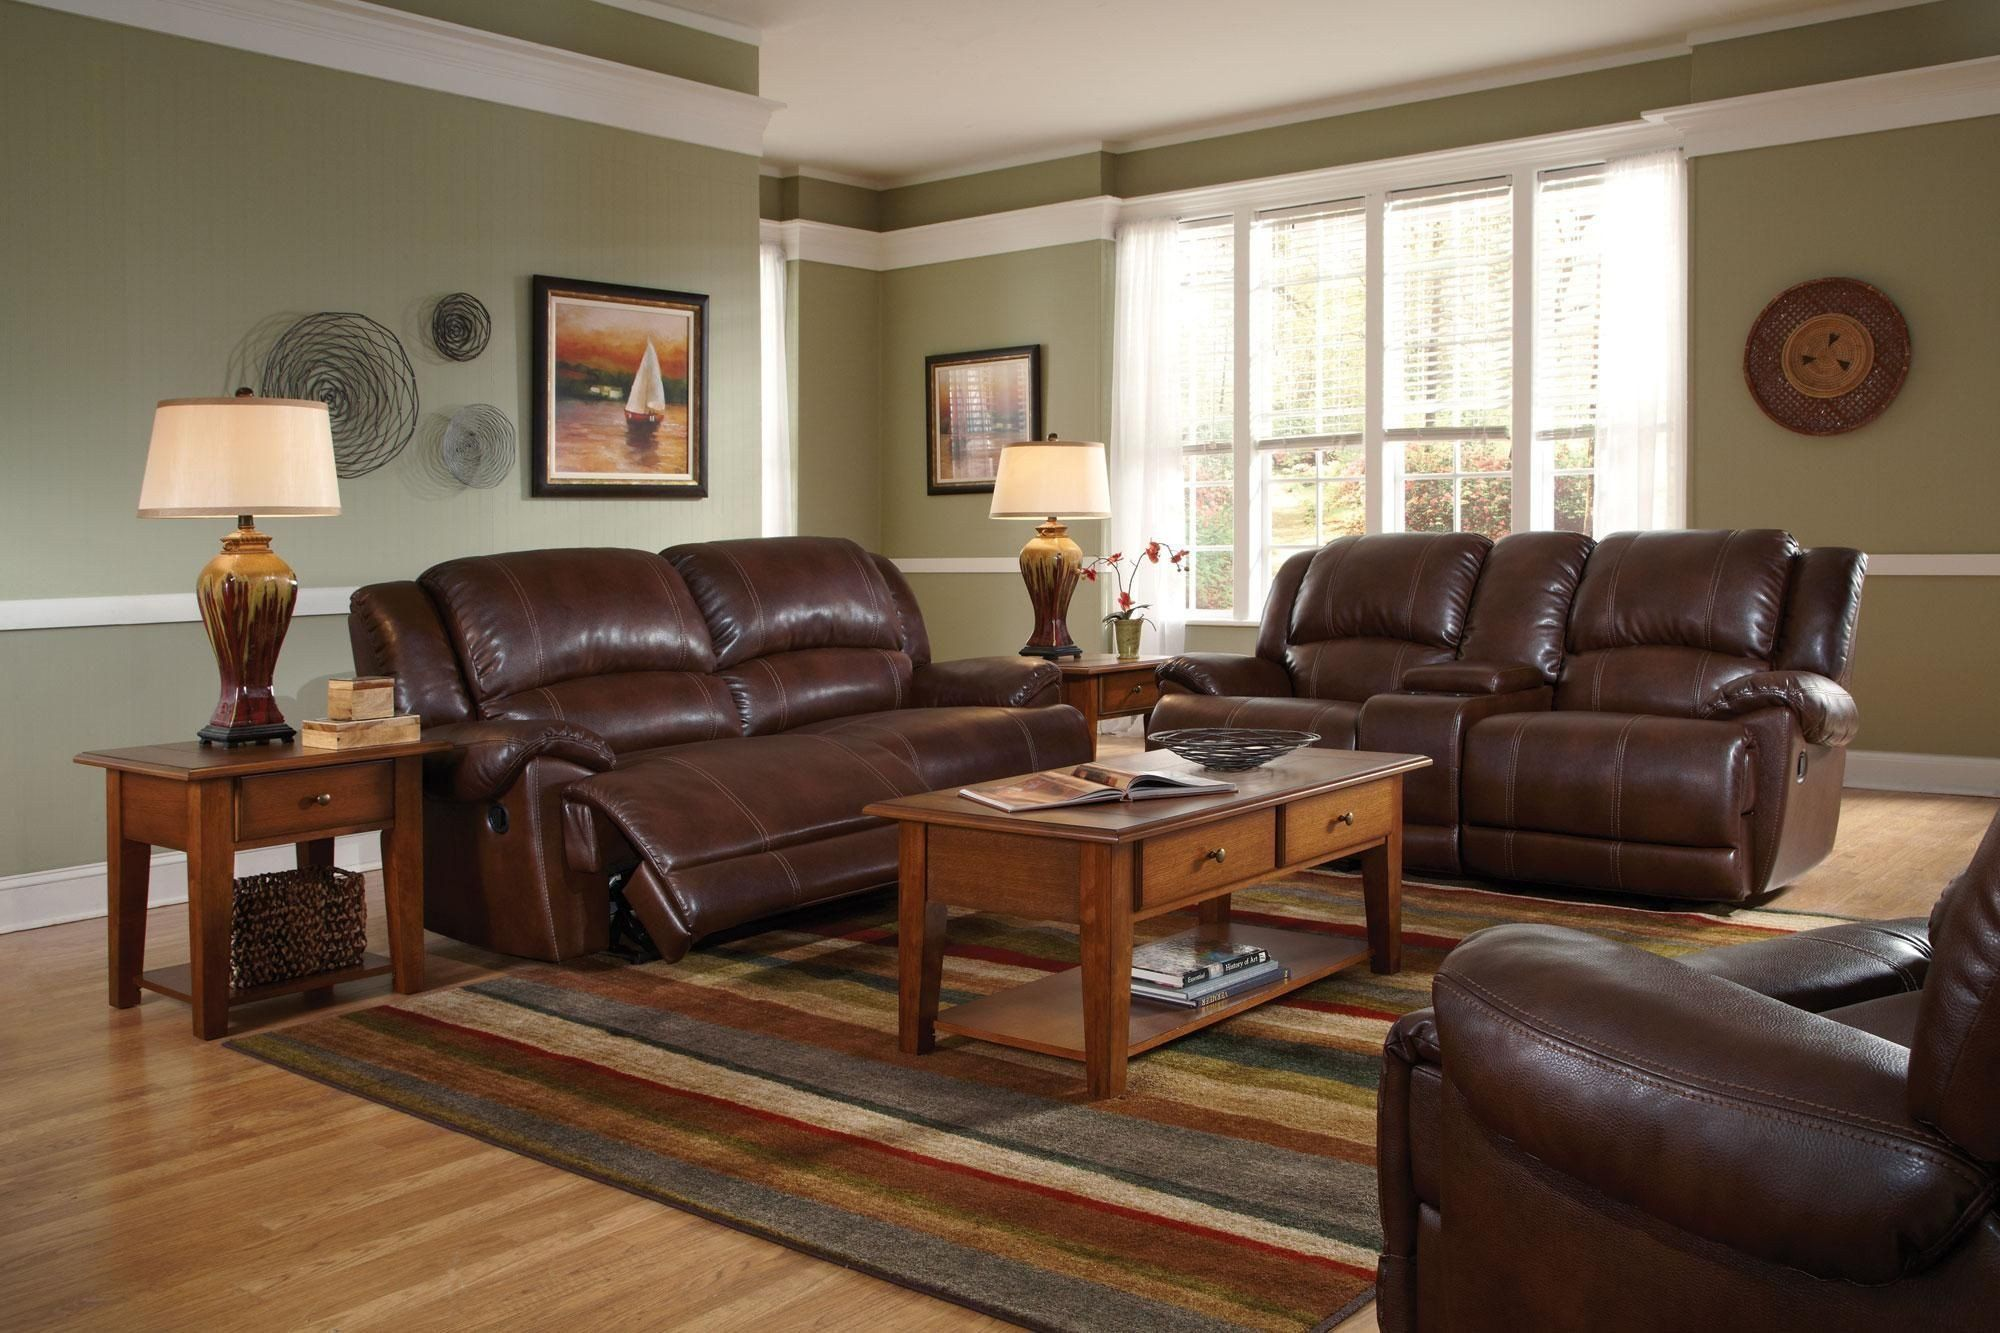 20 Paint Colors for Living Room with Brown Leather ...